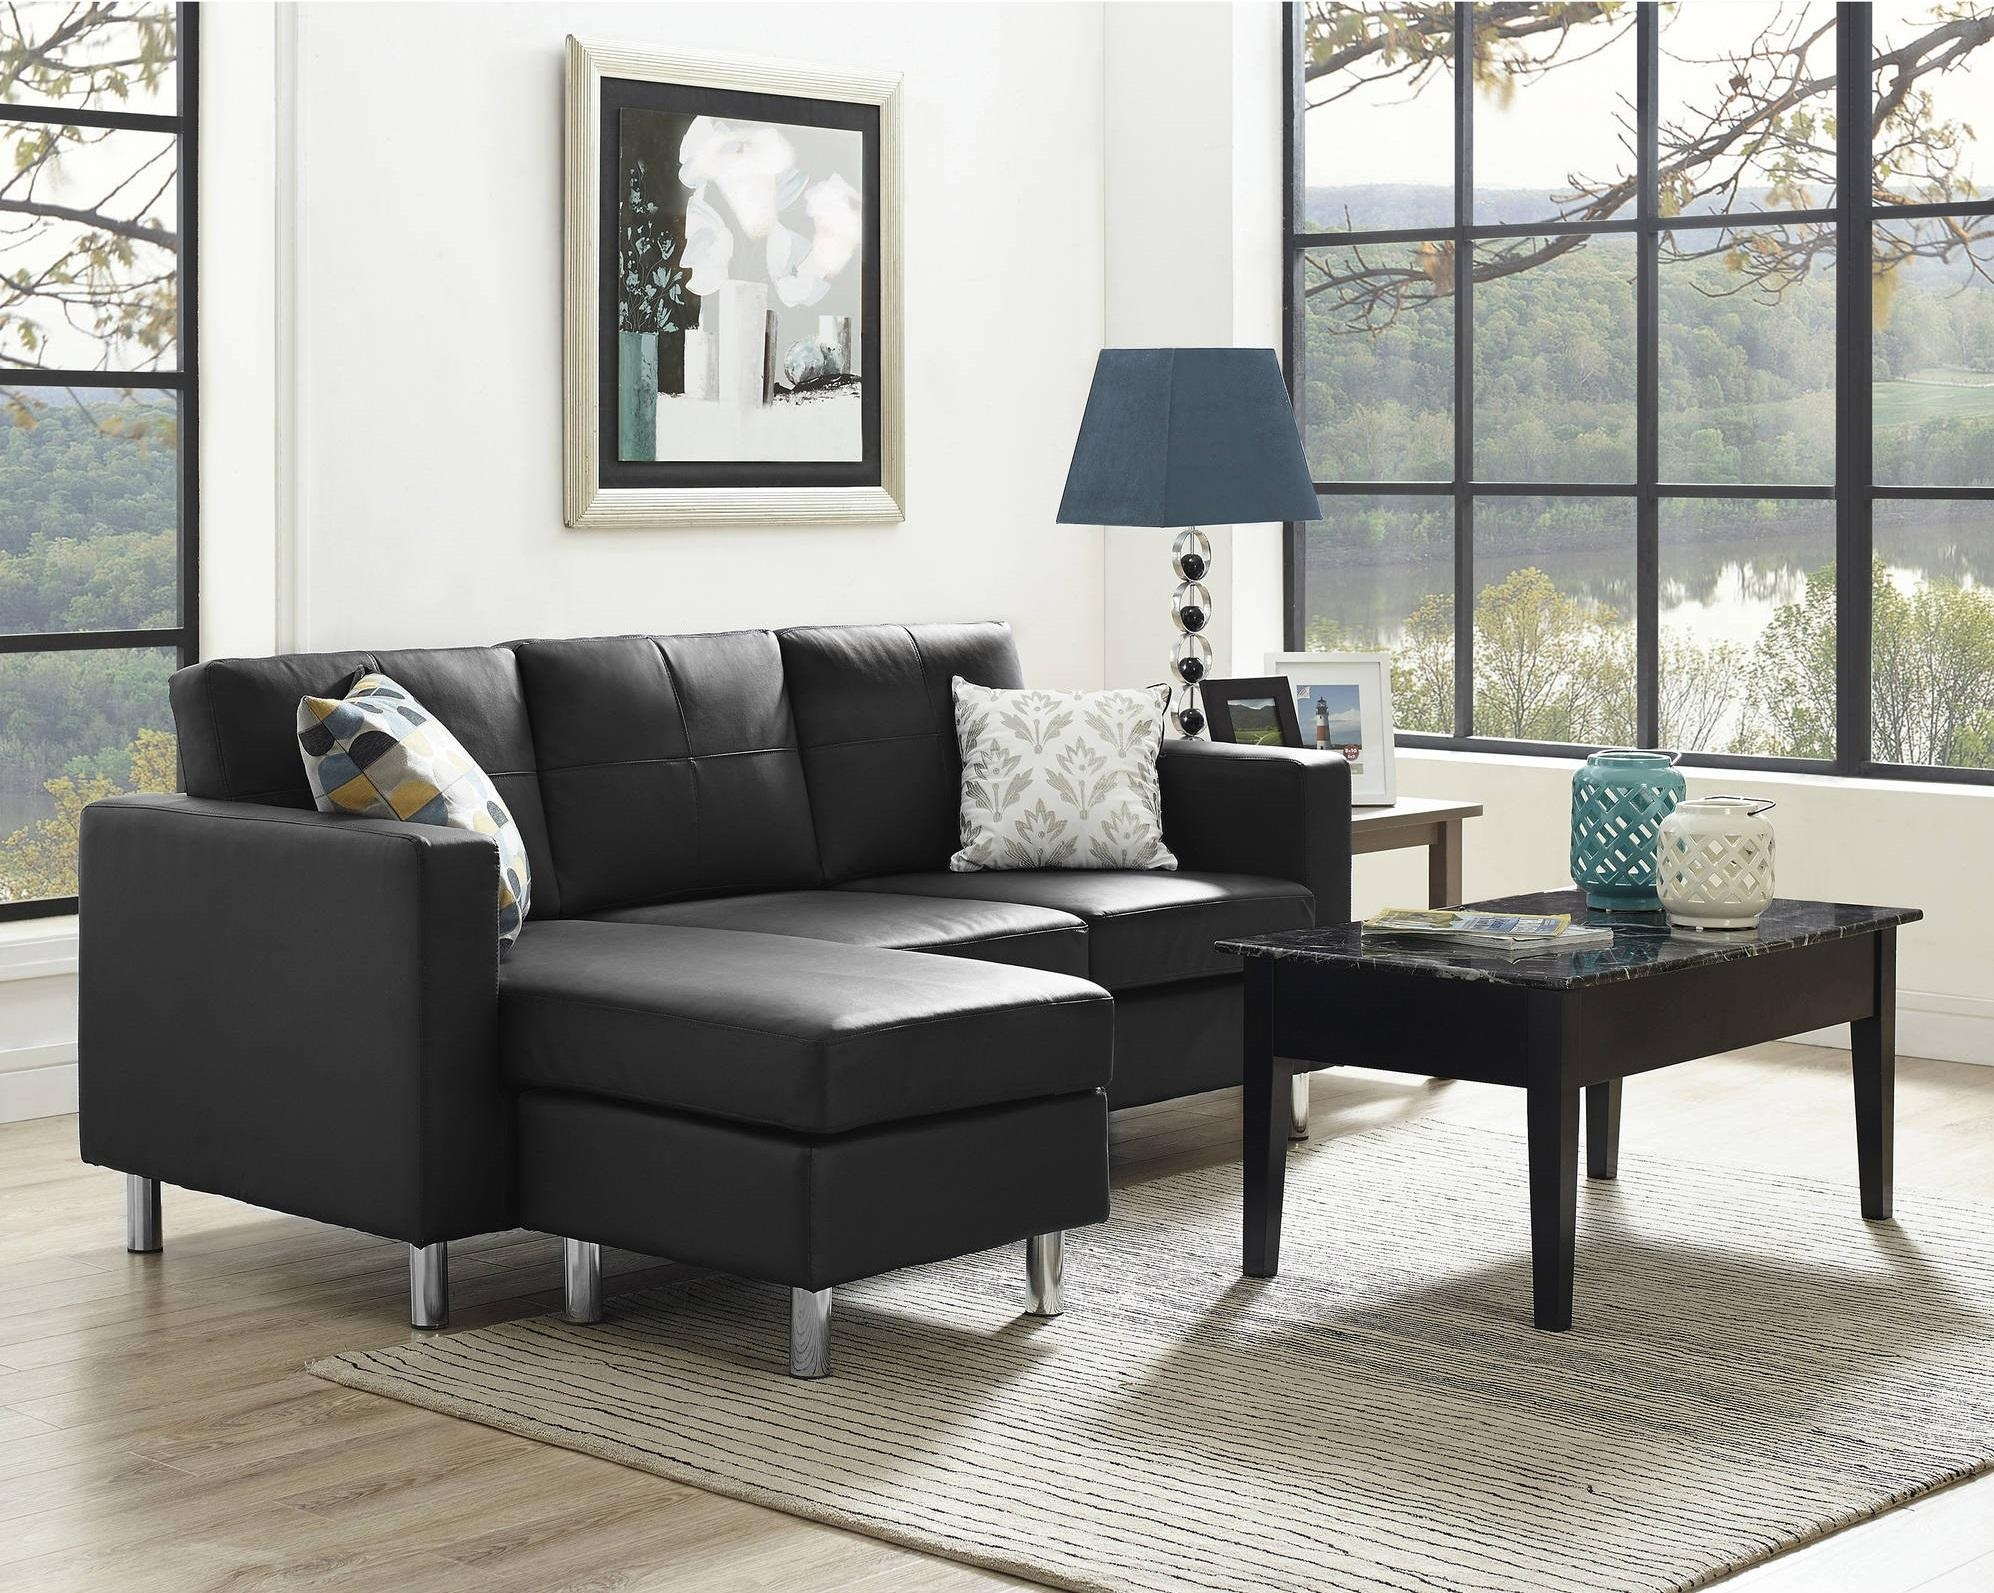 Decorating: Fill Your Home With Comfy Costco Sectionals Sofa For For Berkline Sectional Sofas (View 14 of 20)